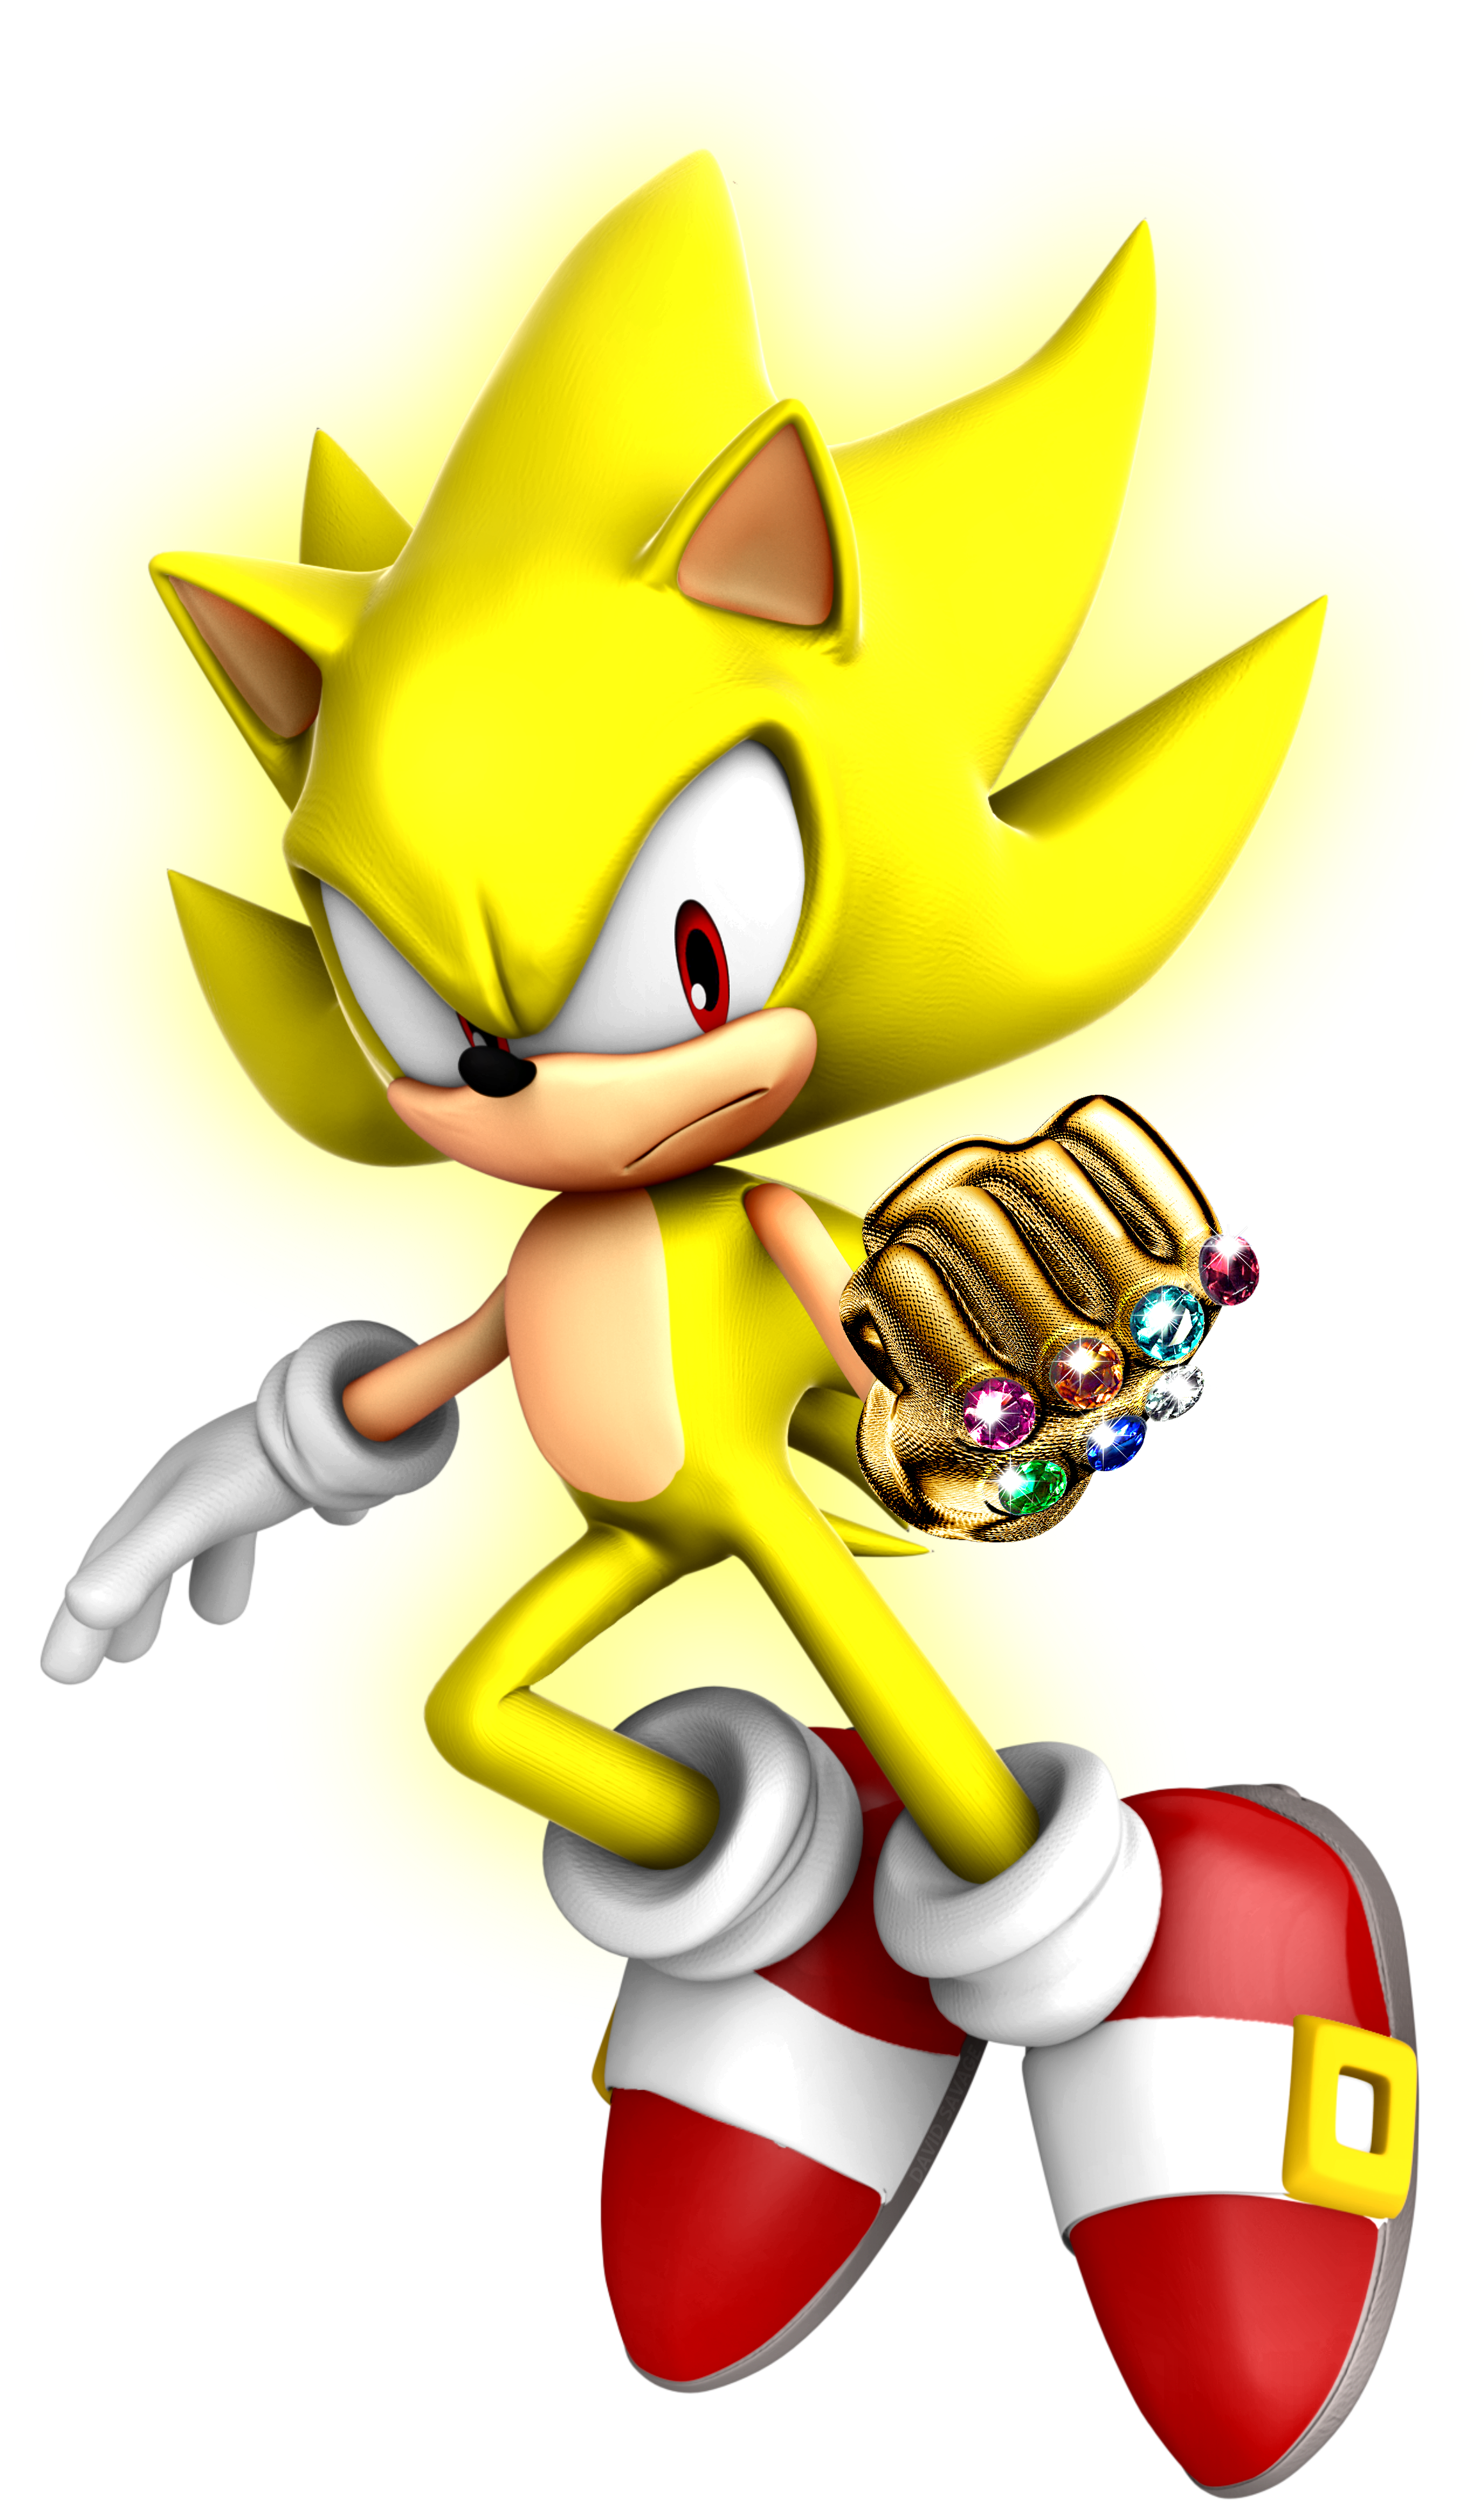 Super Sonic The Hedgehog And The Chaos Gauntlet By Ultimate Savage On Deviantart